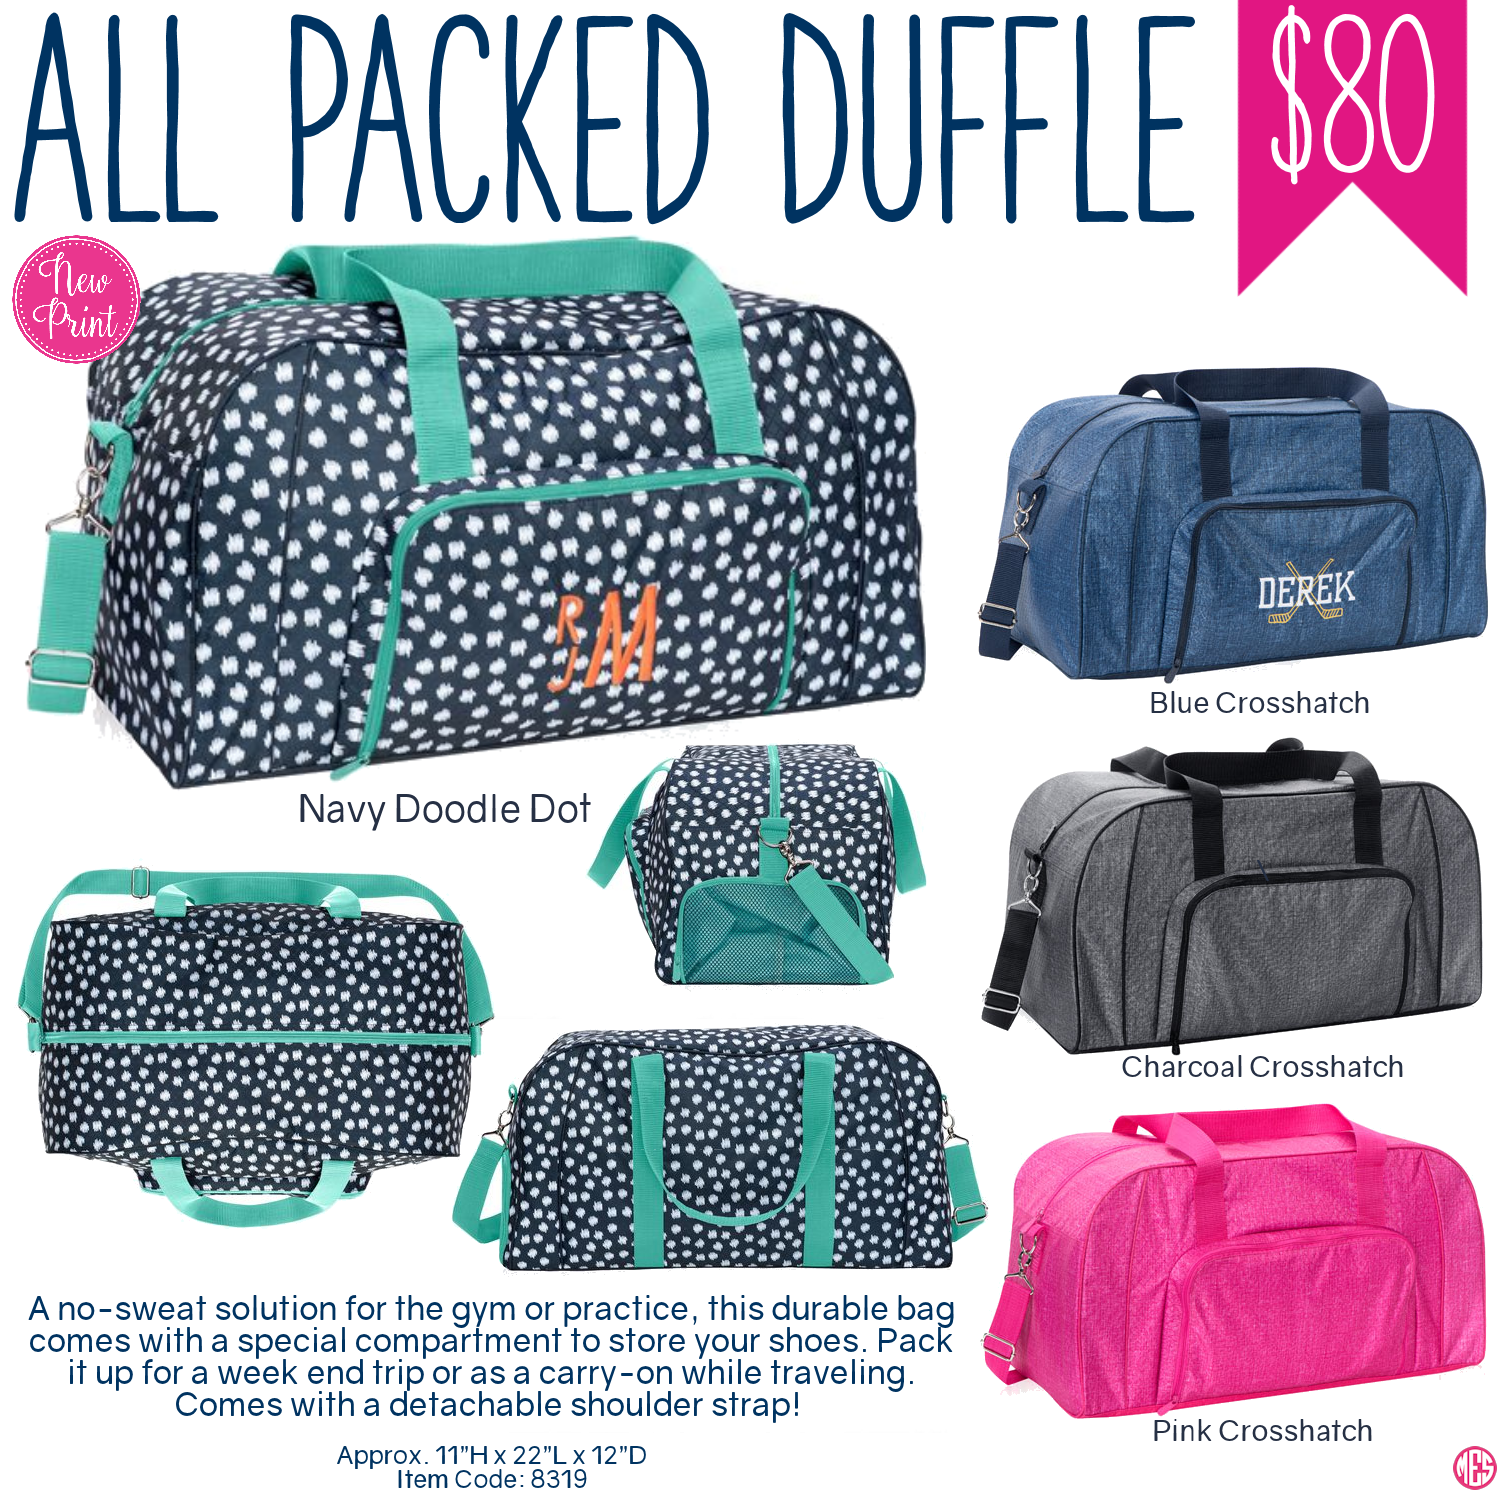 44caaa1331bd Thirty-One All Packed Duffle - Spring Summer 2017